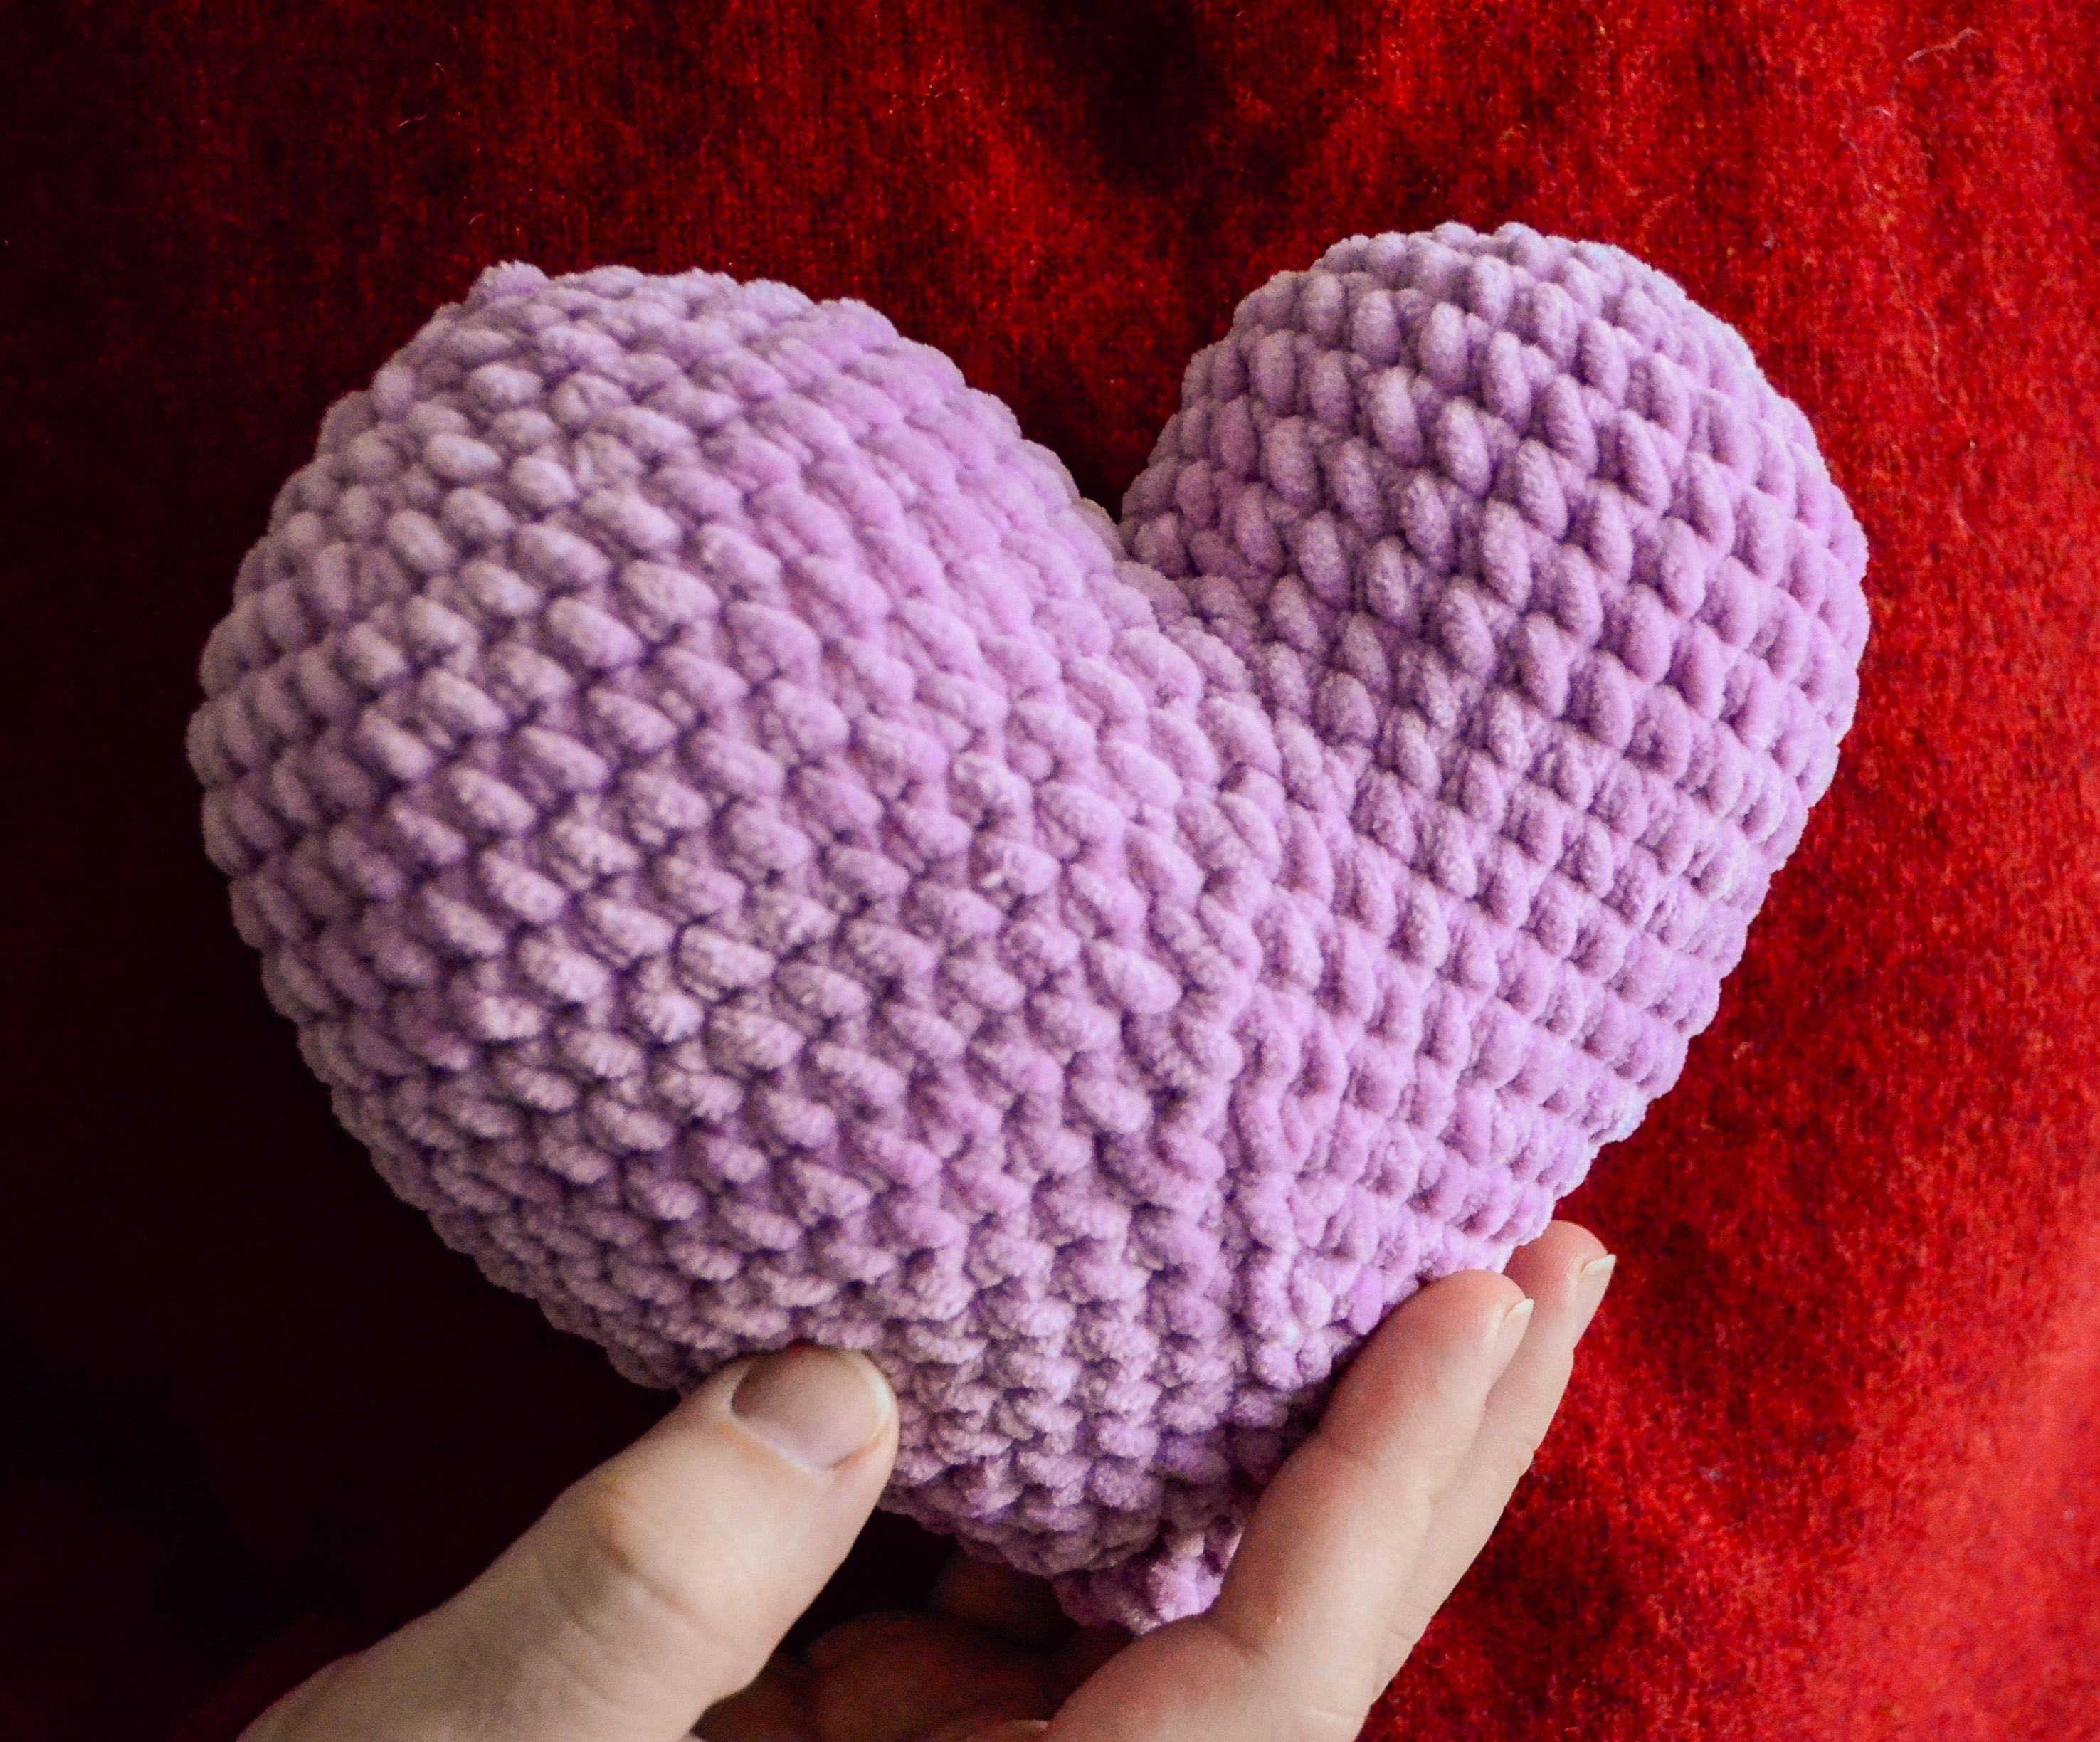 Patchy heart amigurumi free crochet pattern 1